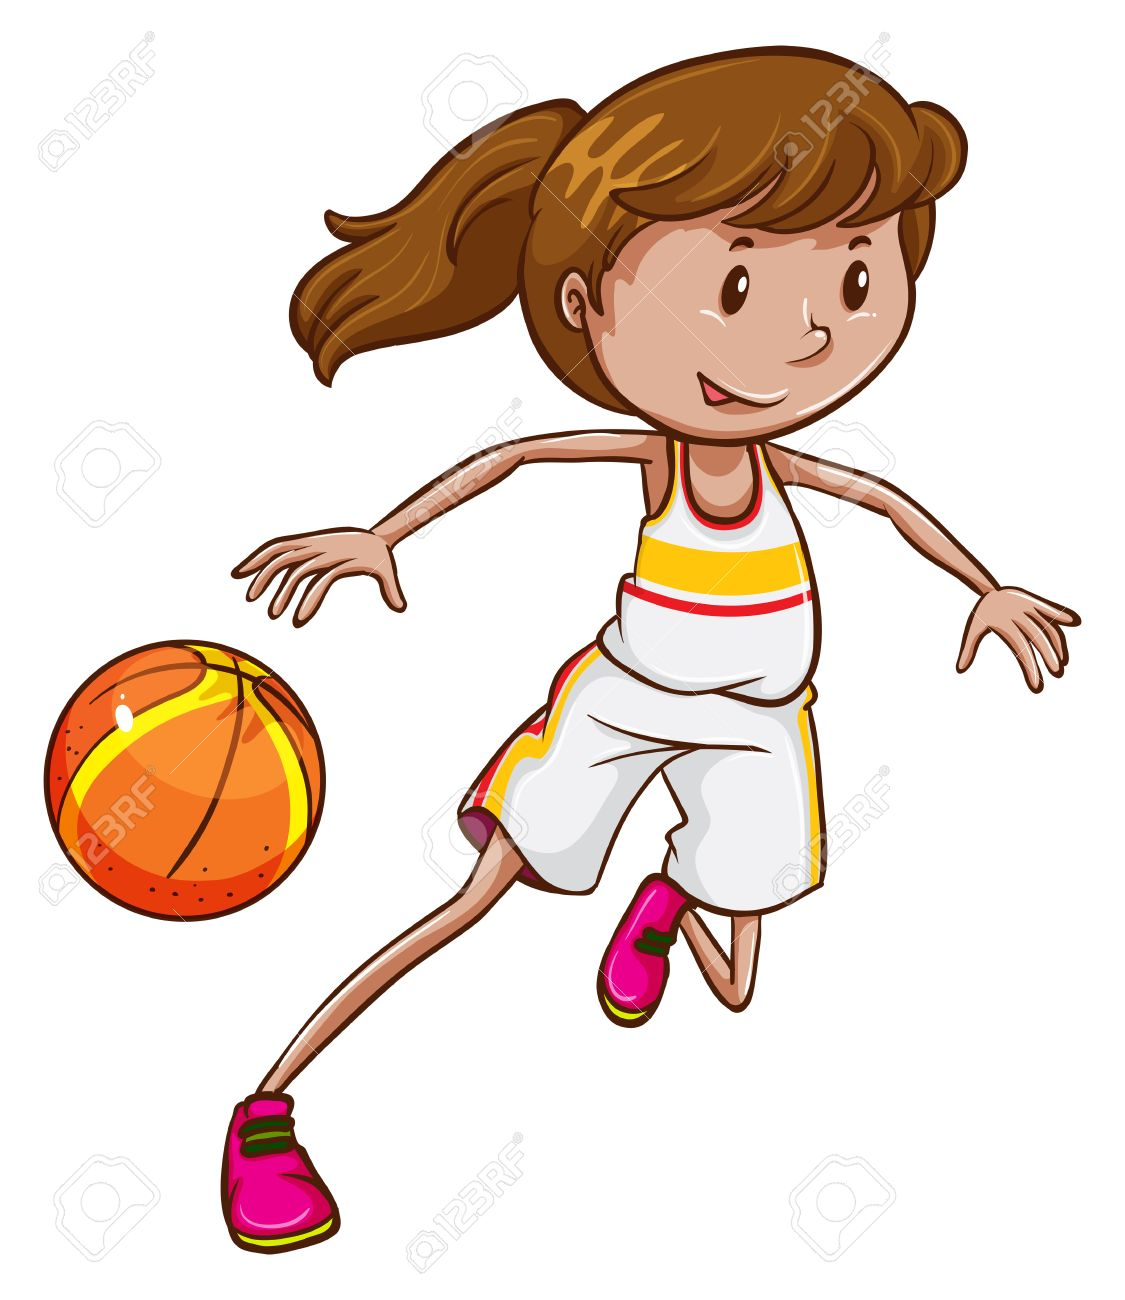 A female basketball player on a white background.